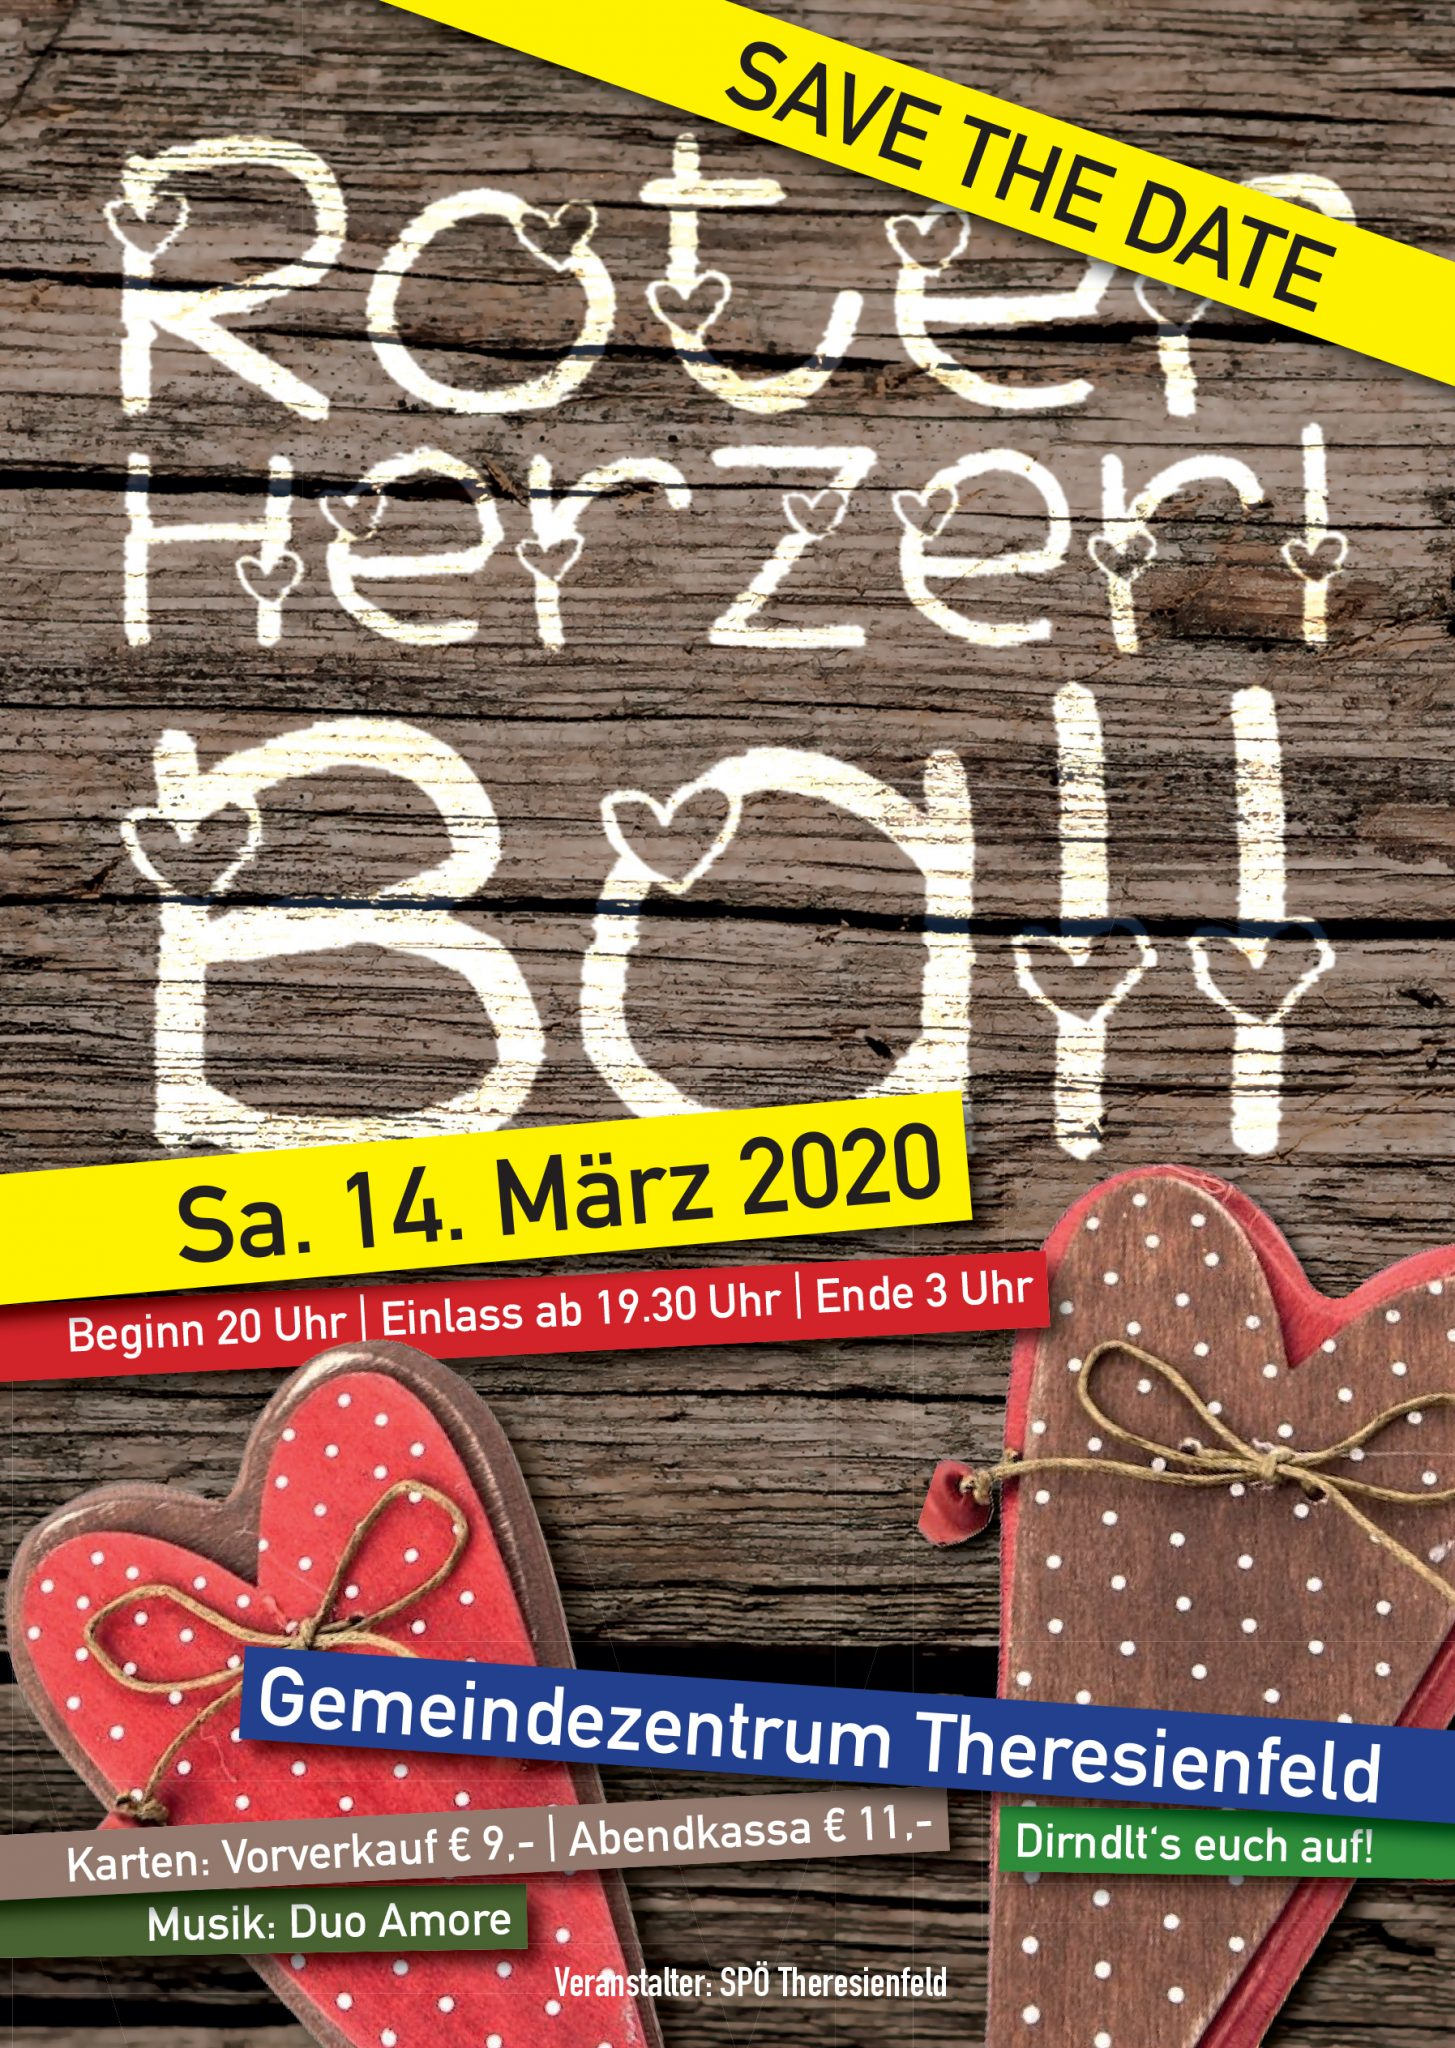 Save the Date: Roter Herzerl Ball 2020